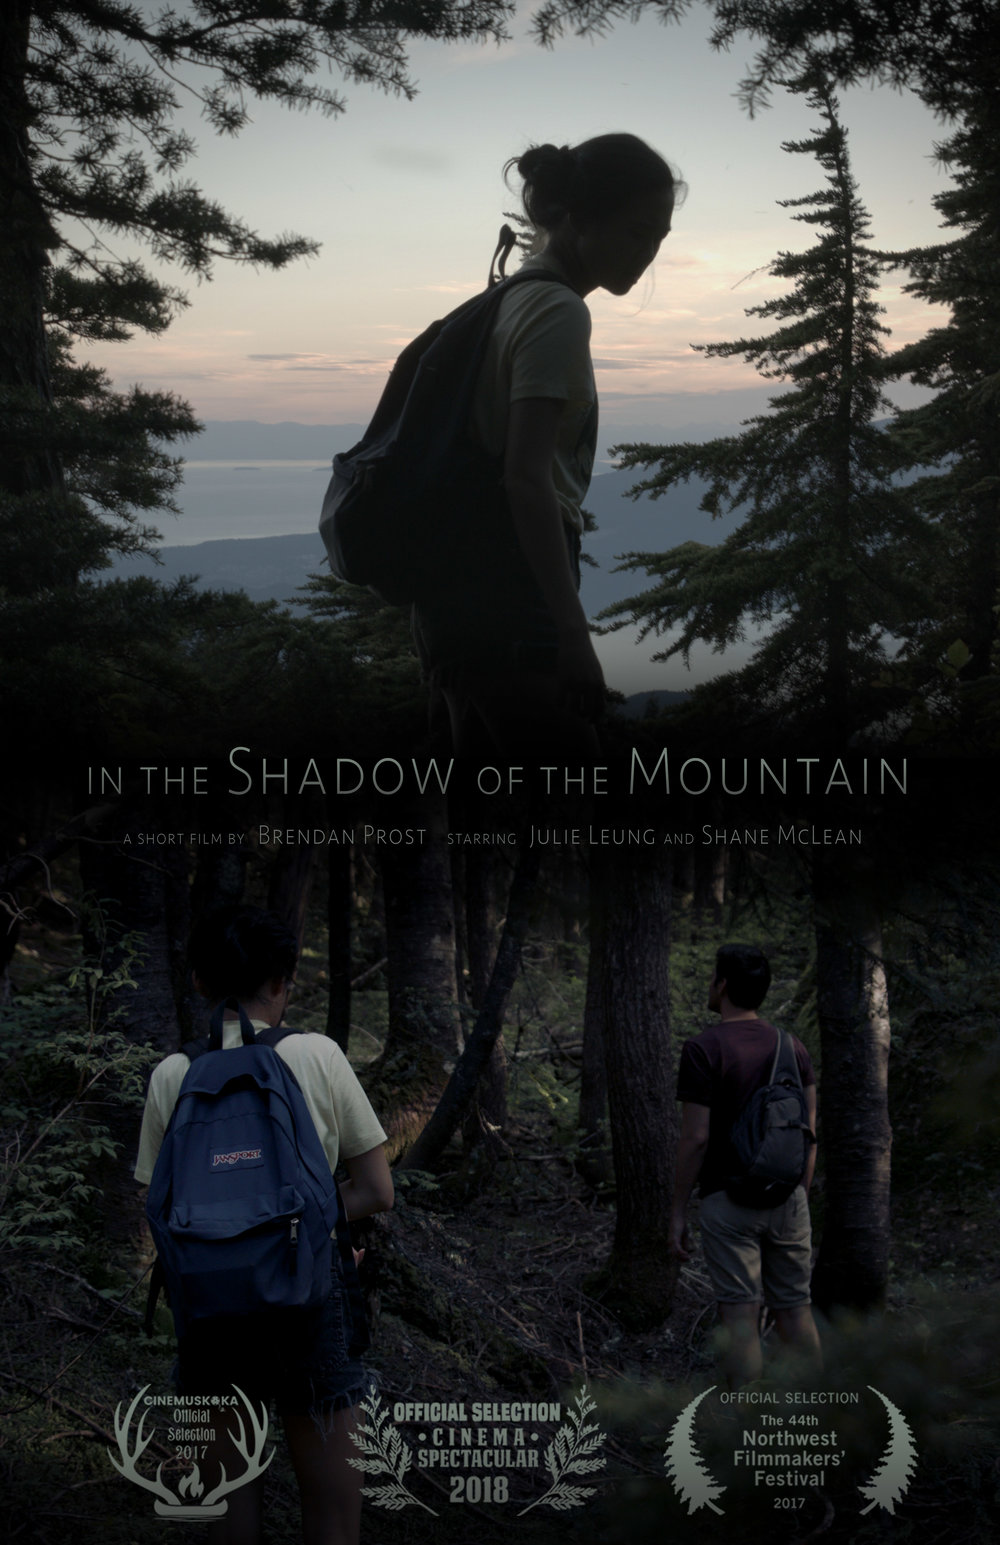 IN THE SHADOW OF THE MOUNTAIN - Short / 2017 / 11mins